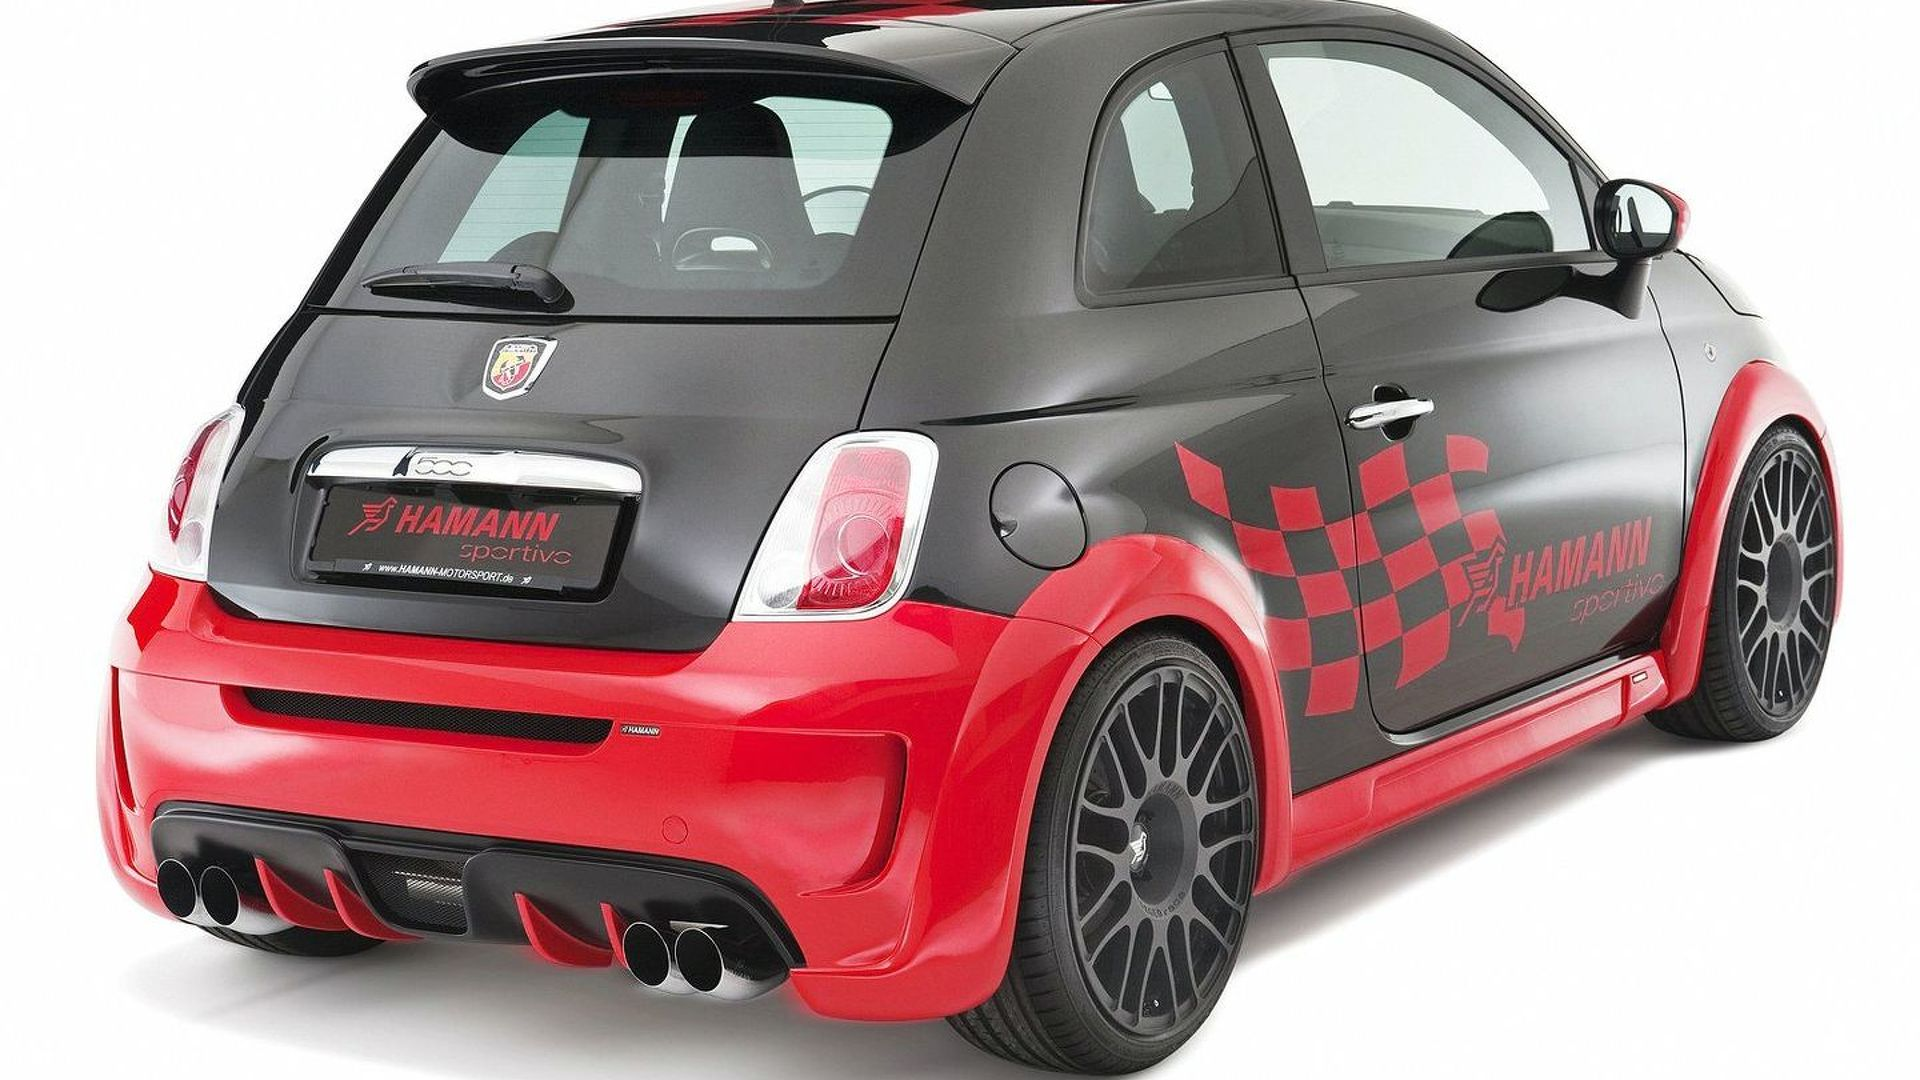 Fiat 500 Abarth and Abarth esseesse by Hamann